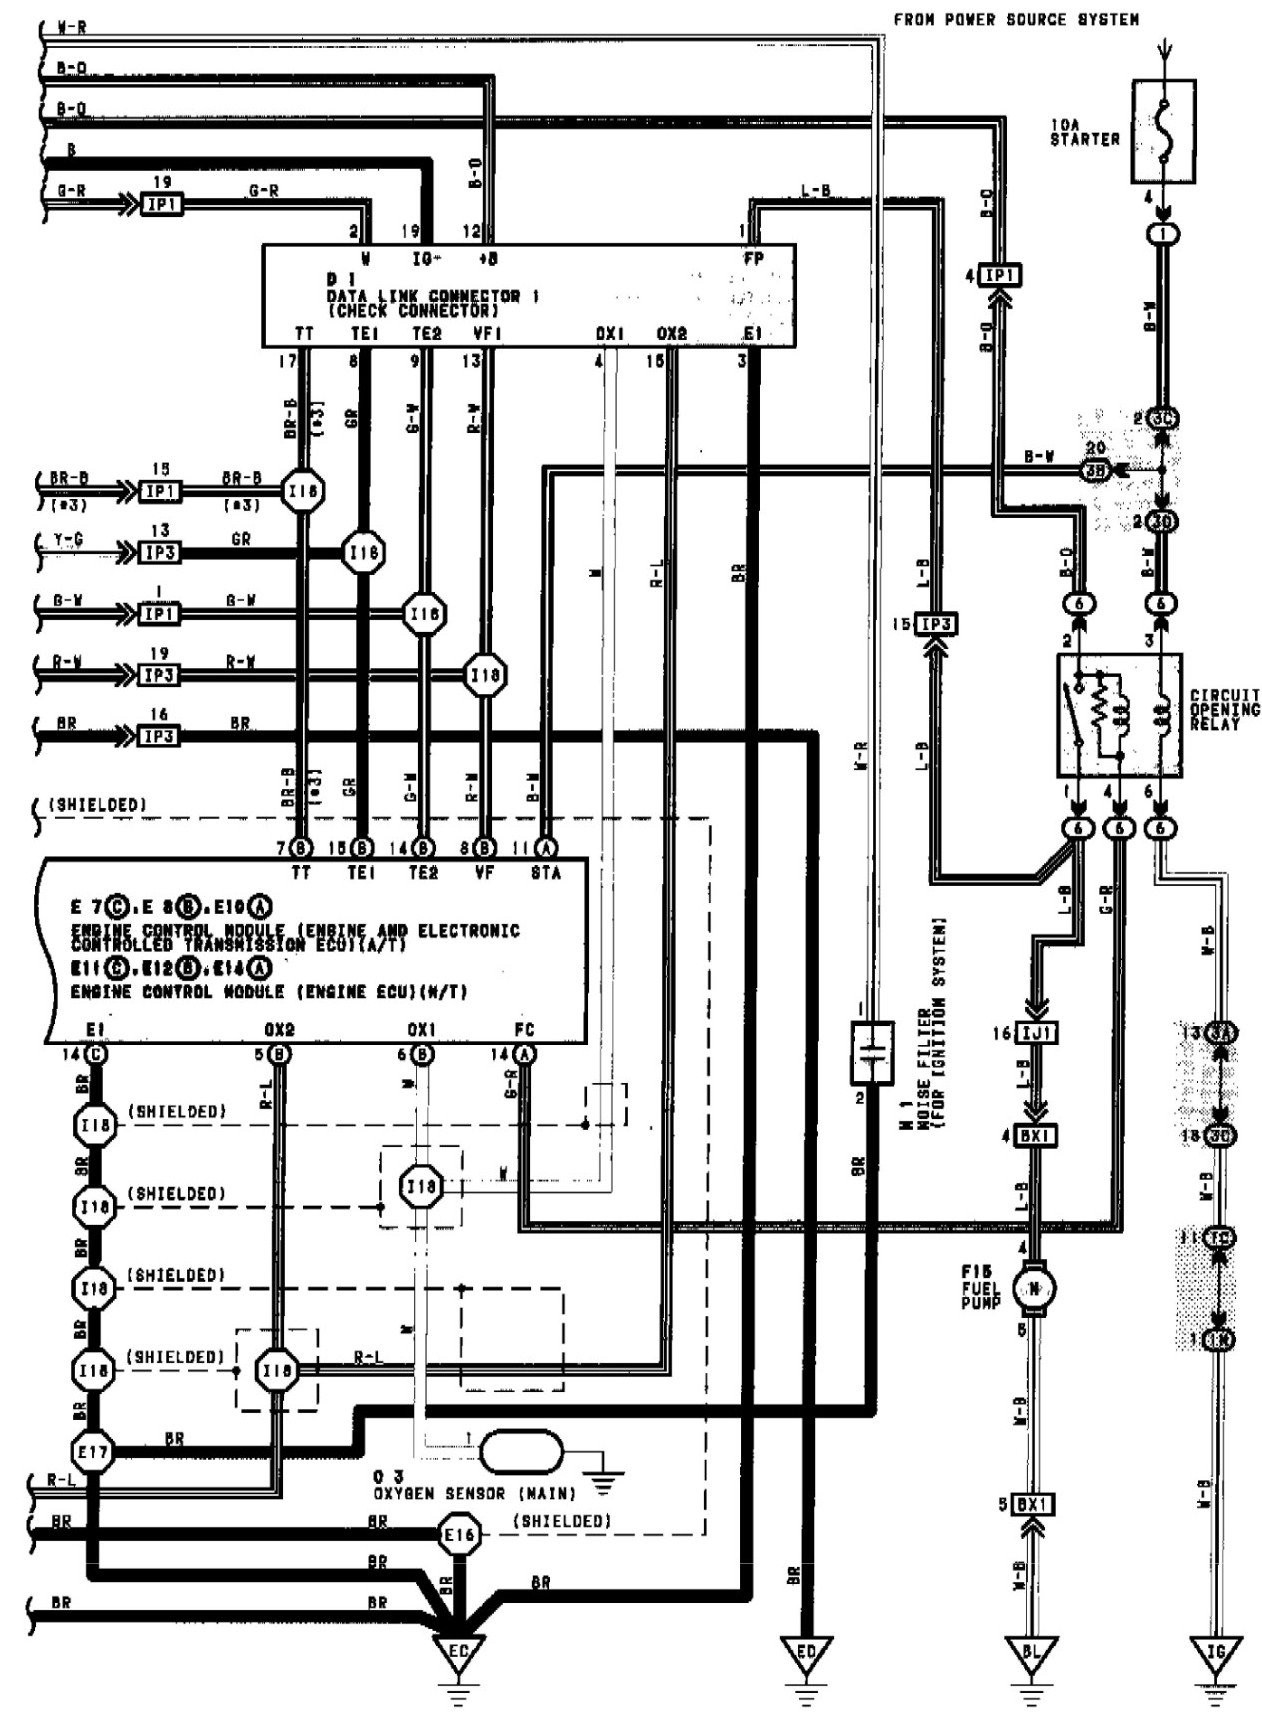 hight resolution of 2011 toyota camry engine diagram 1996 toyota camry wiring diagram wiring diagram chocaraze of 2011